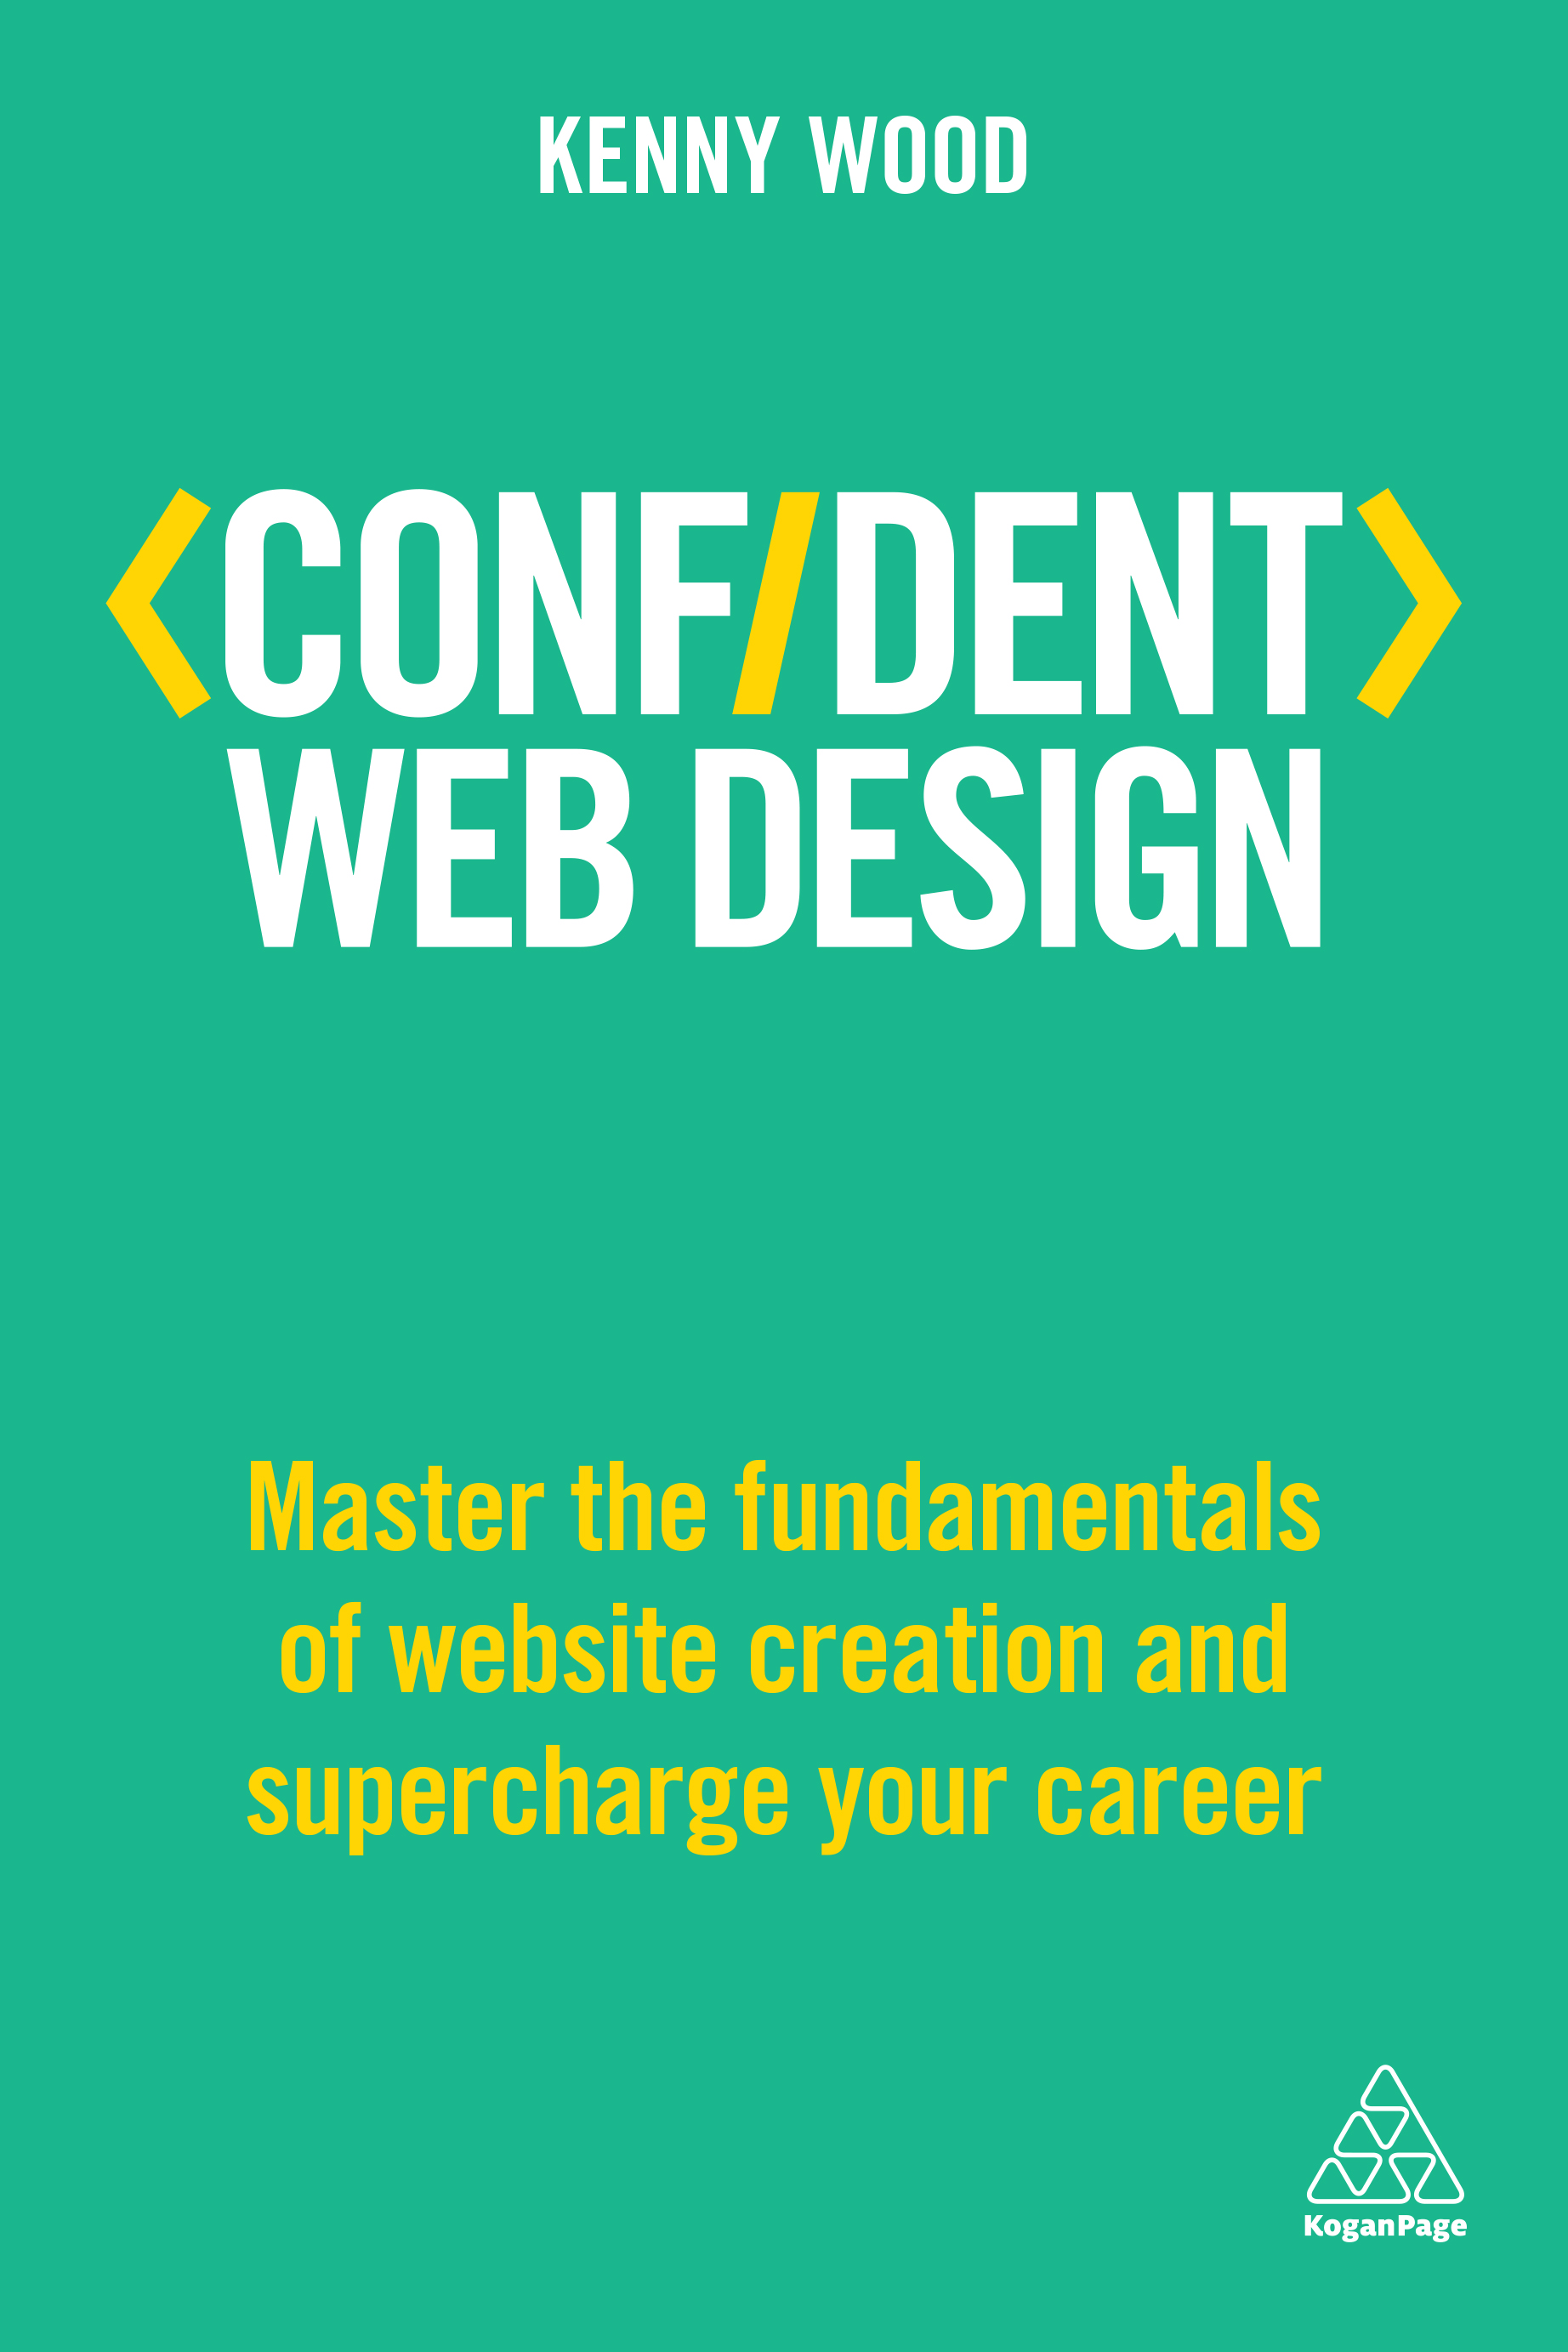 Download Ebook Confident Web Design by Kenny Wood Pdf